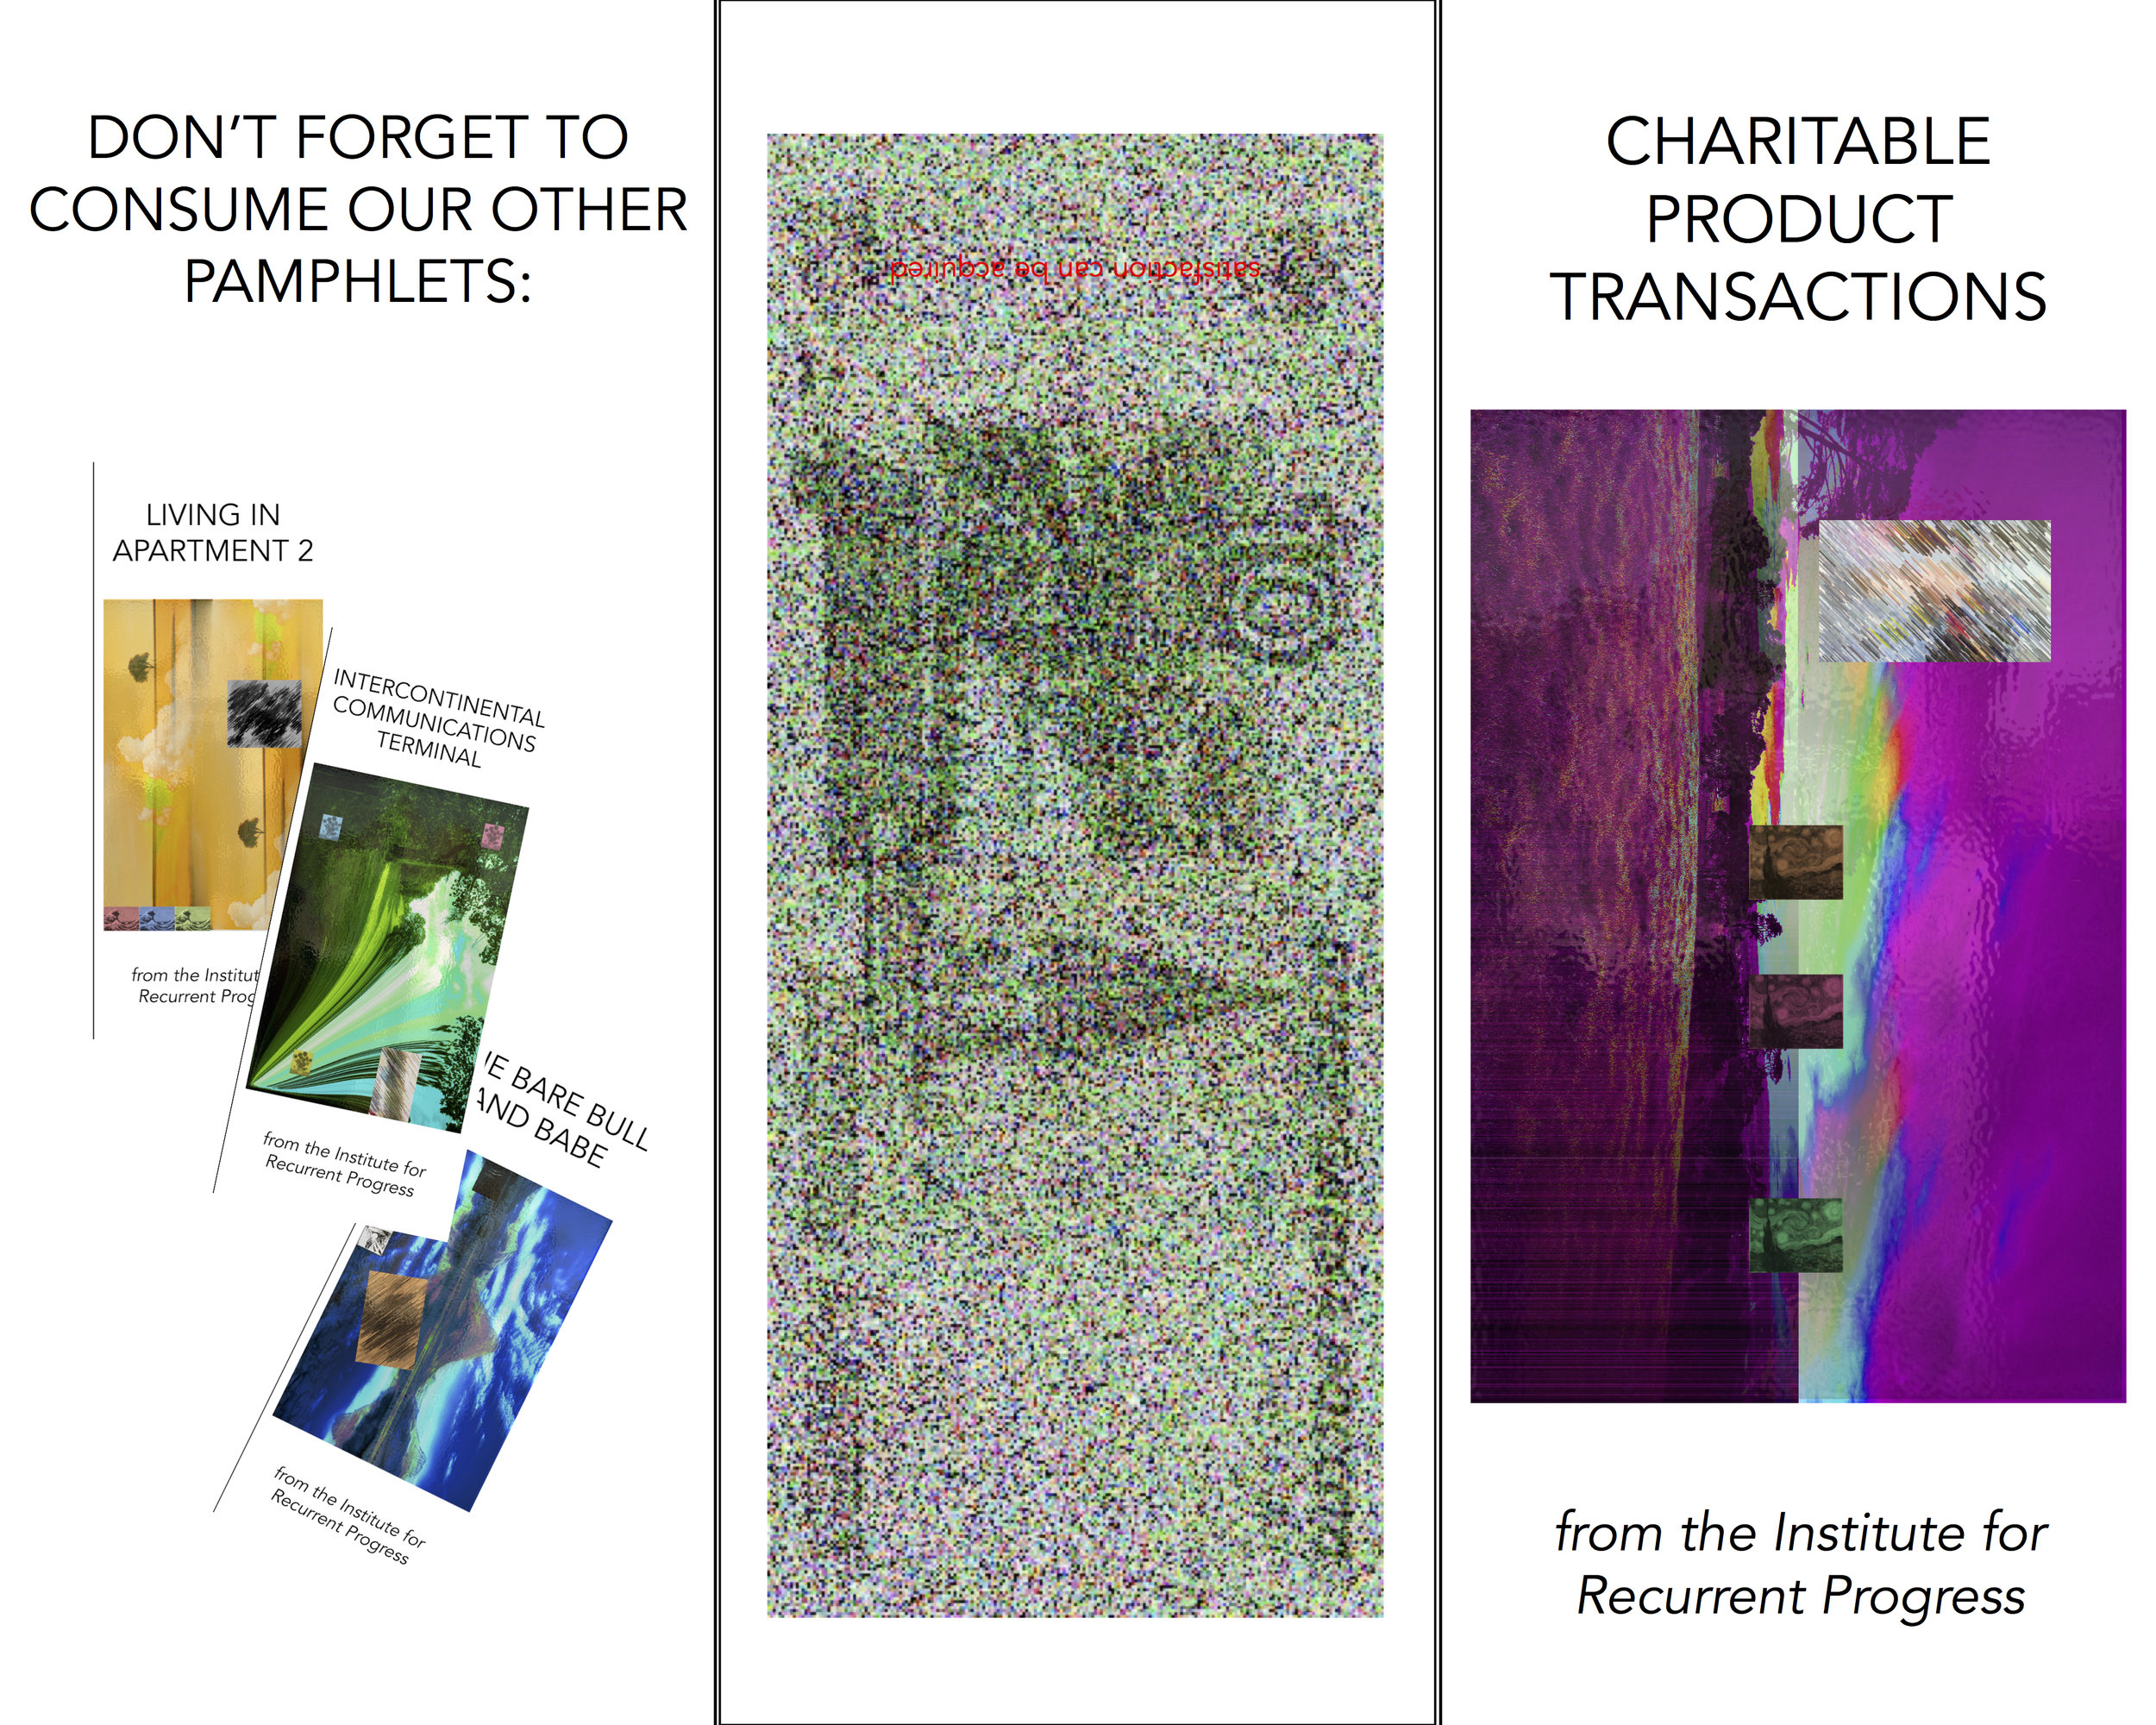 Charitable Product Transactions (exterior)